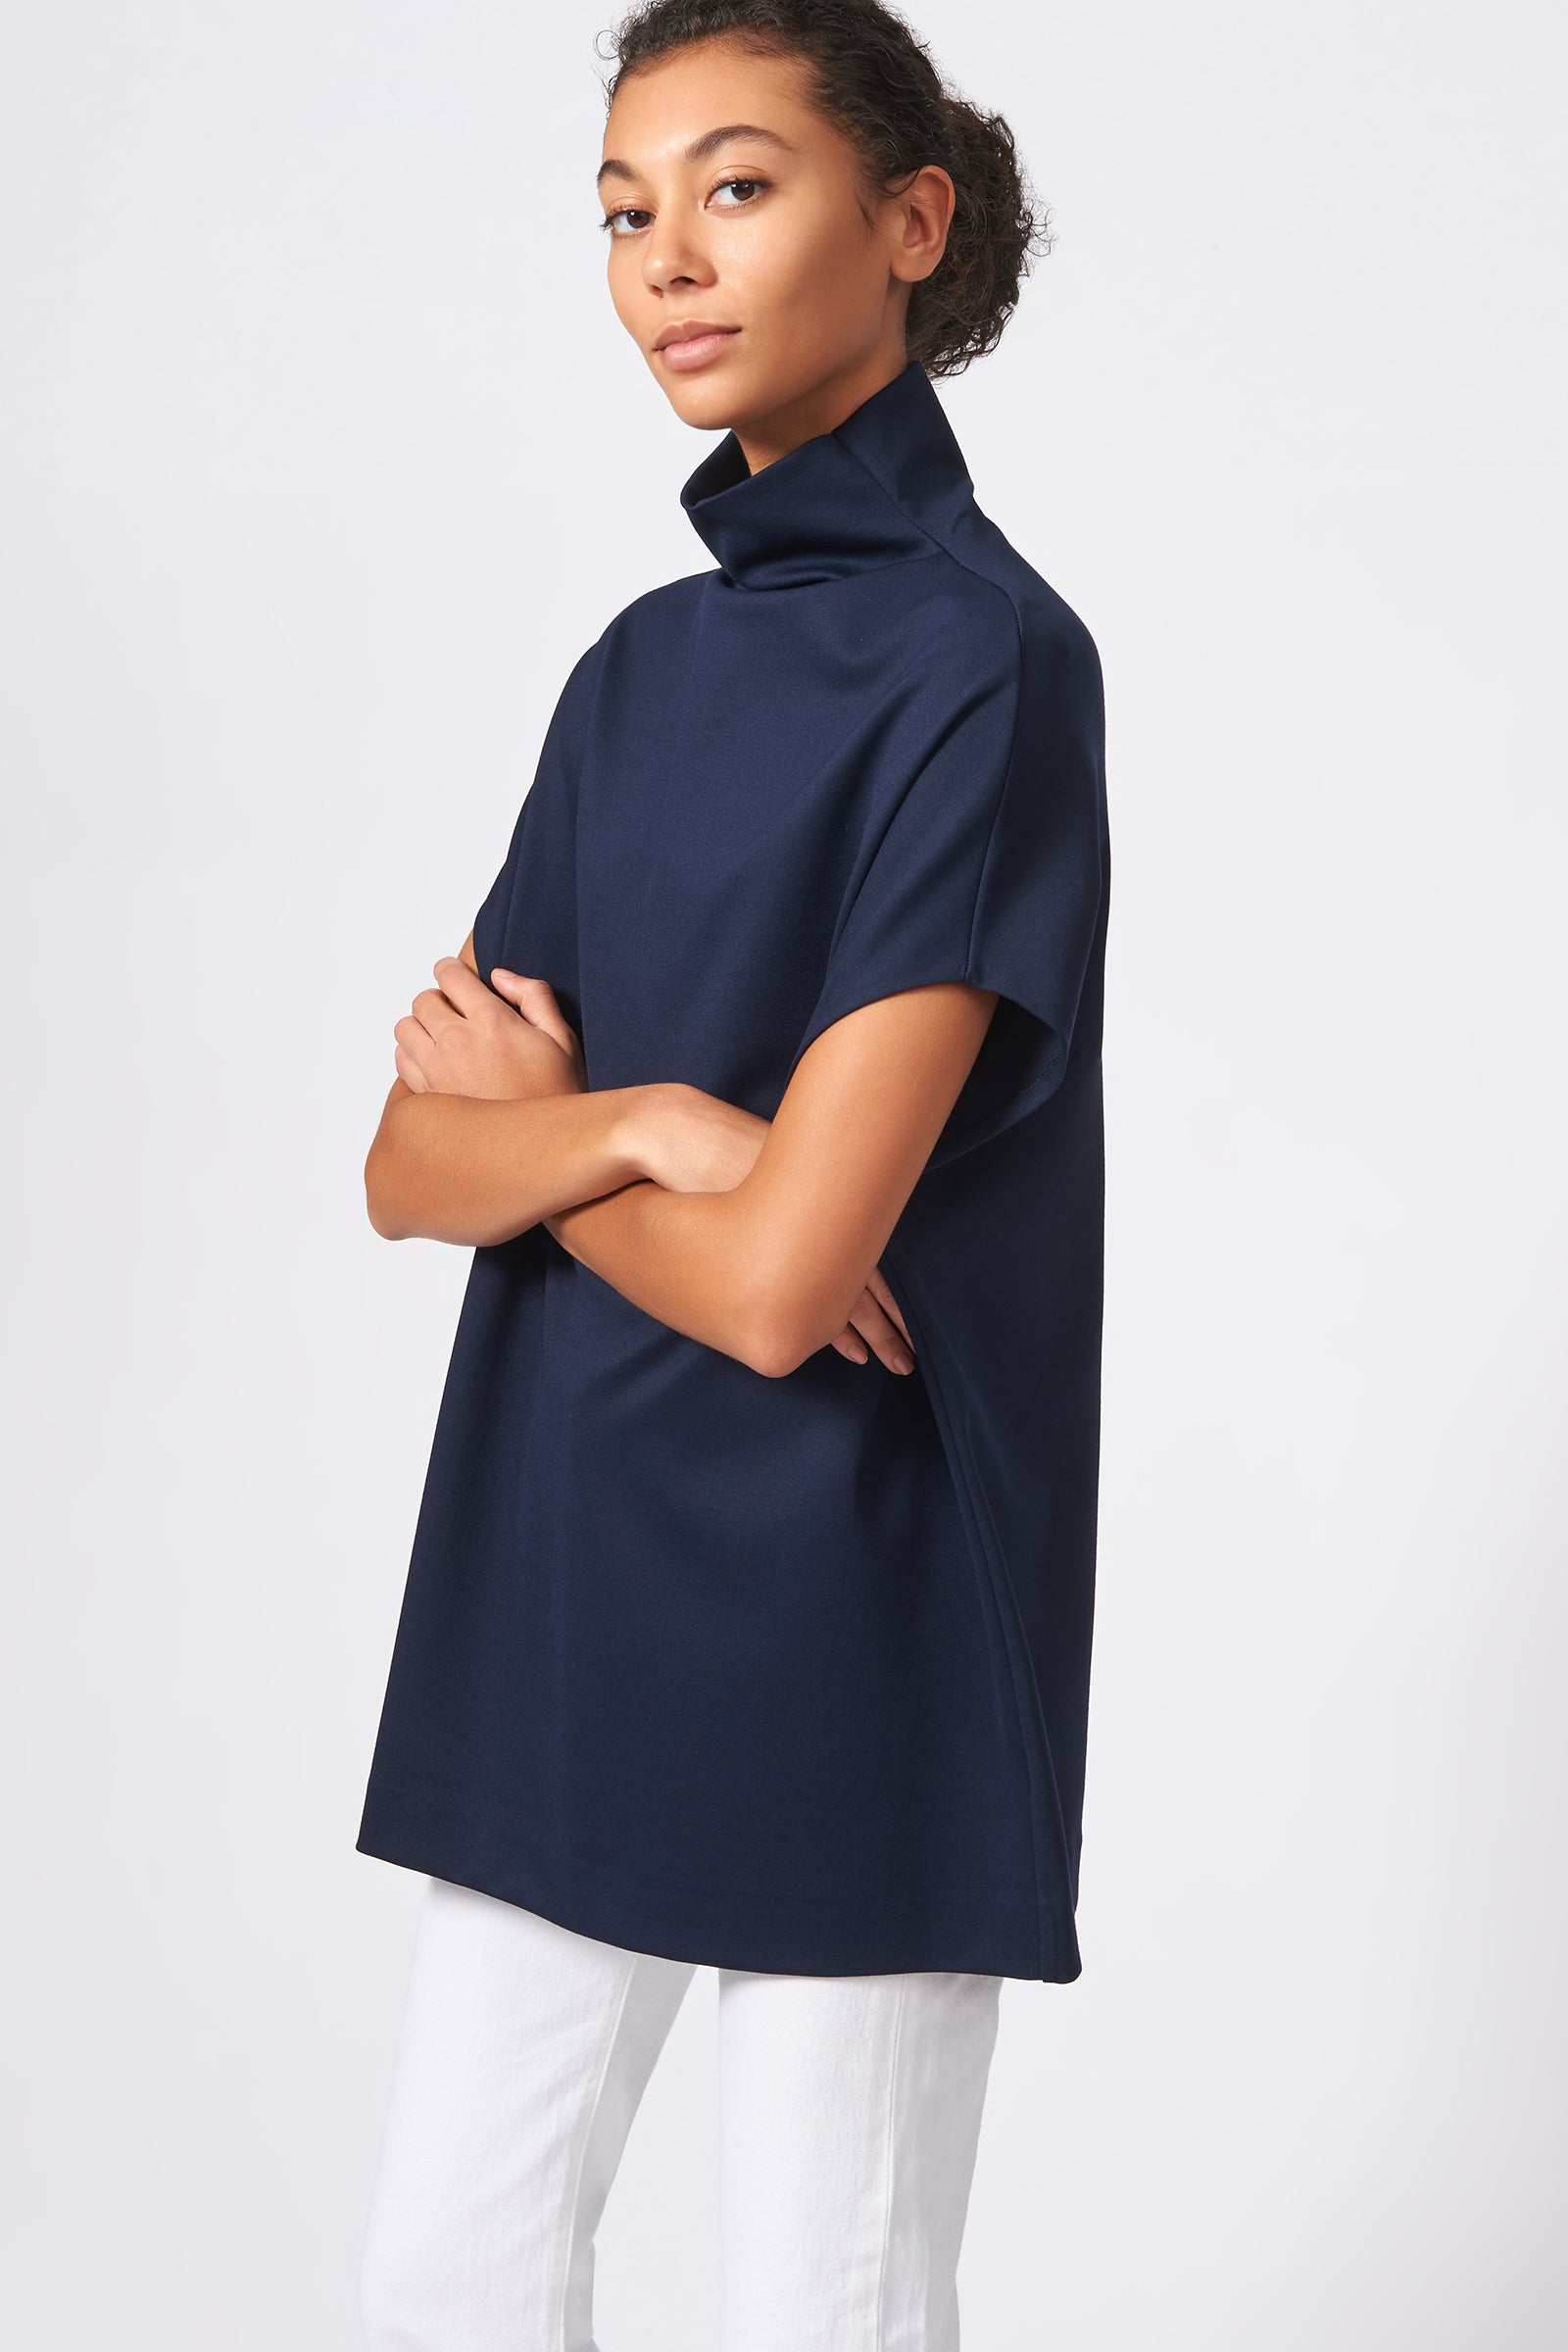 Kal Rieman Ponte Funnelneck in Navy on Model Front Side View